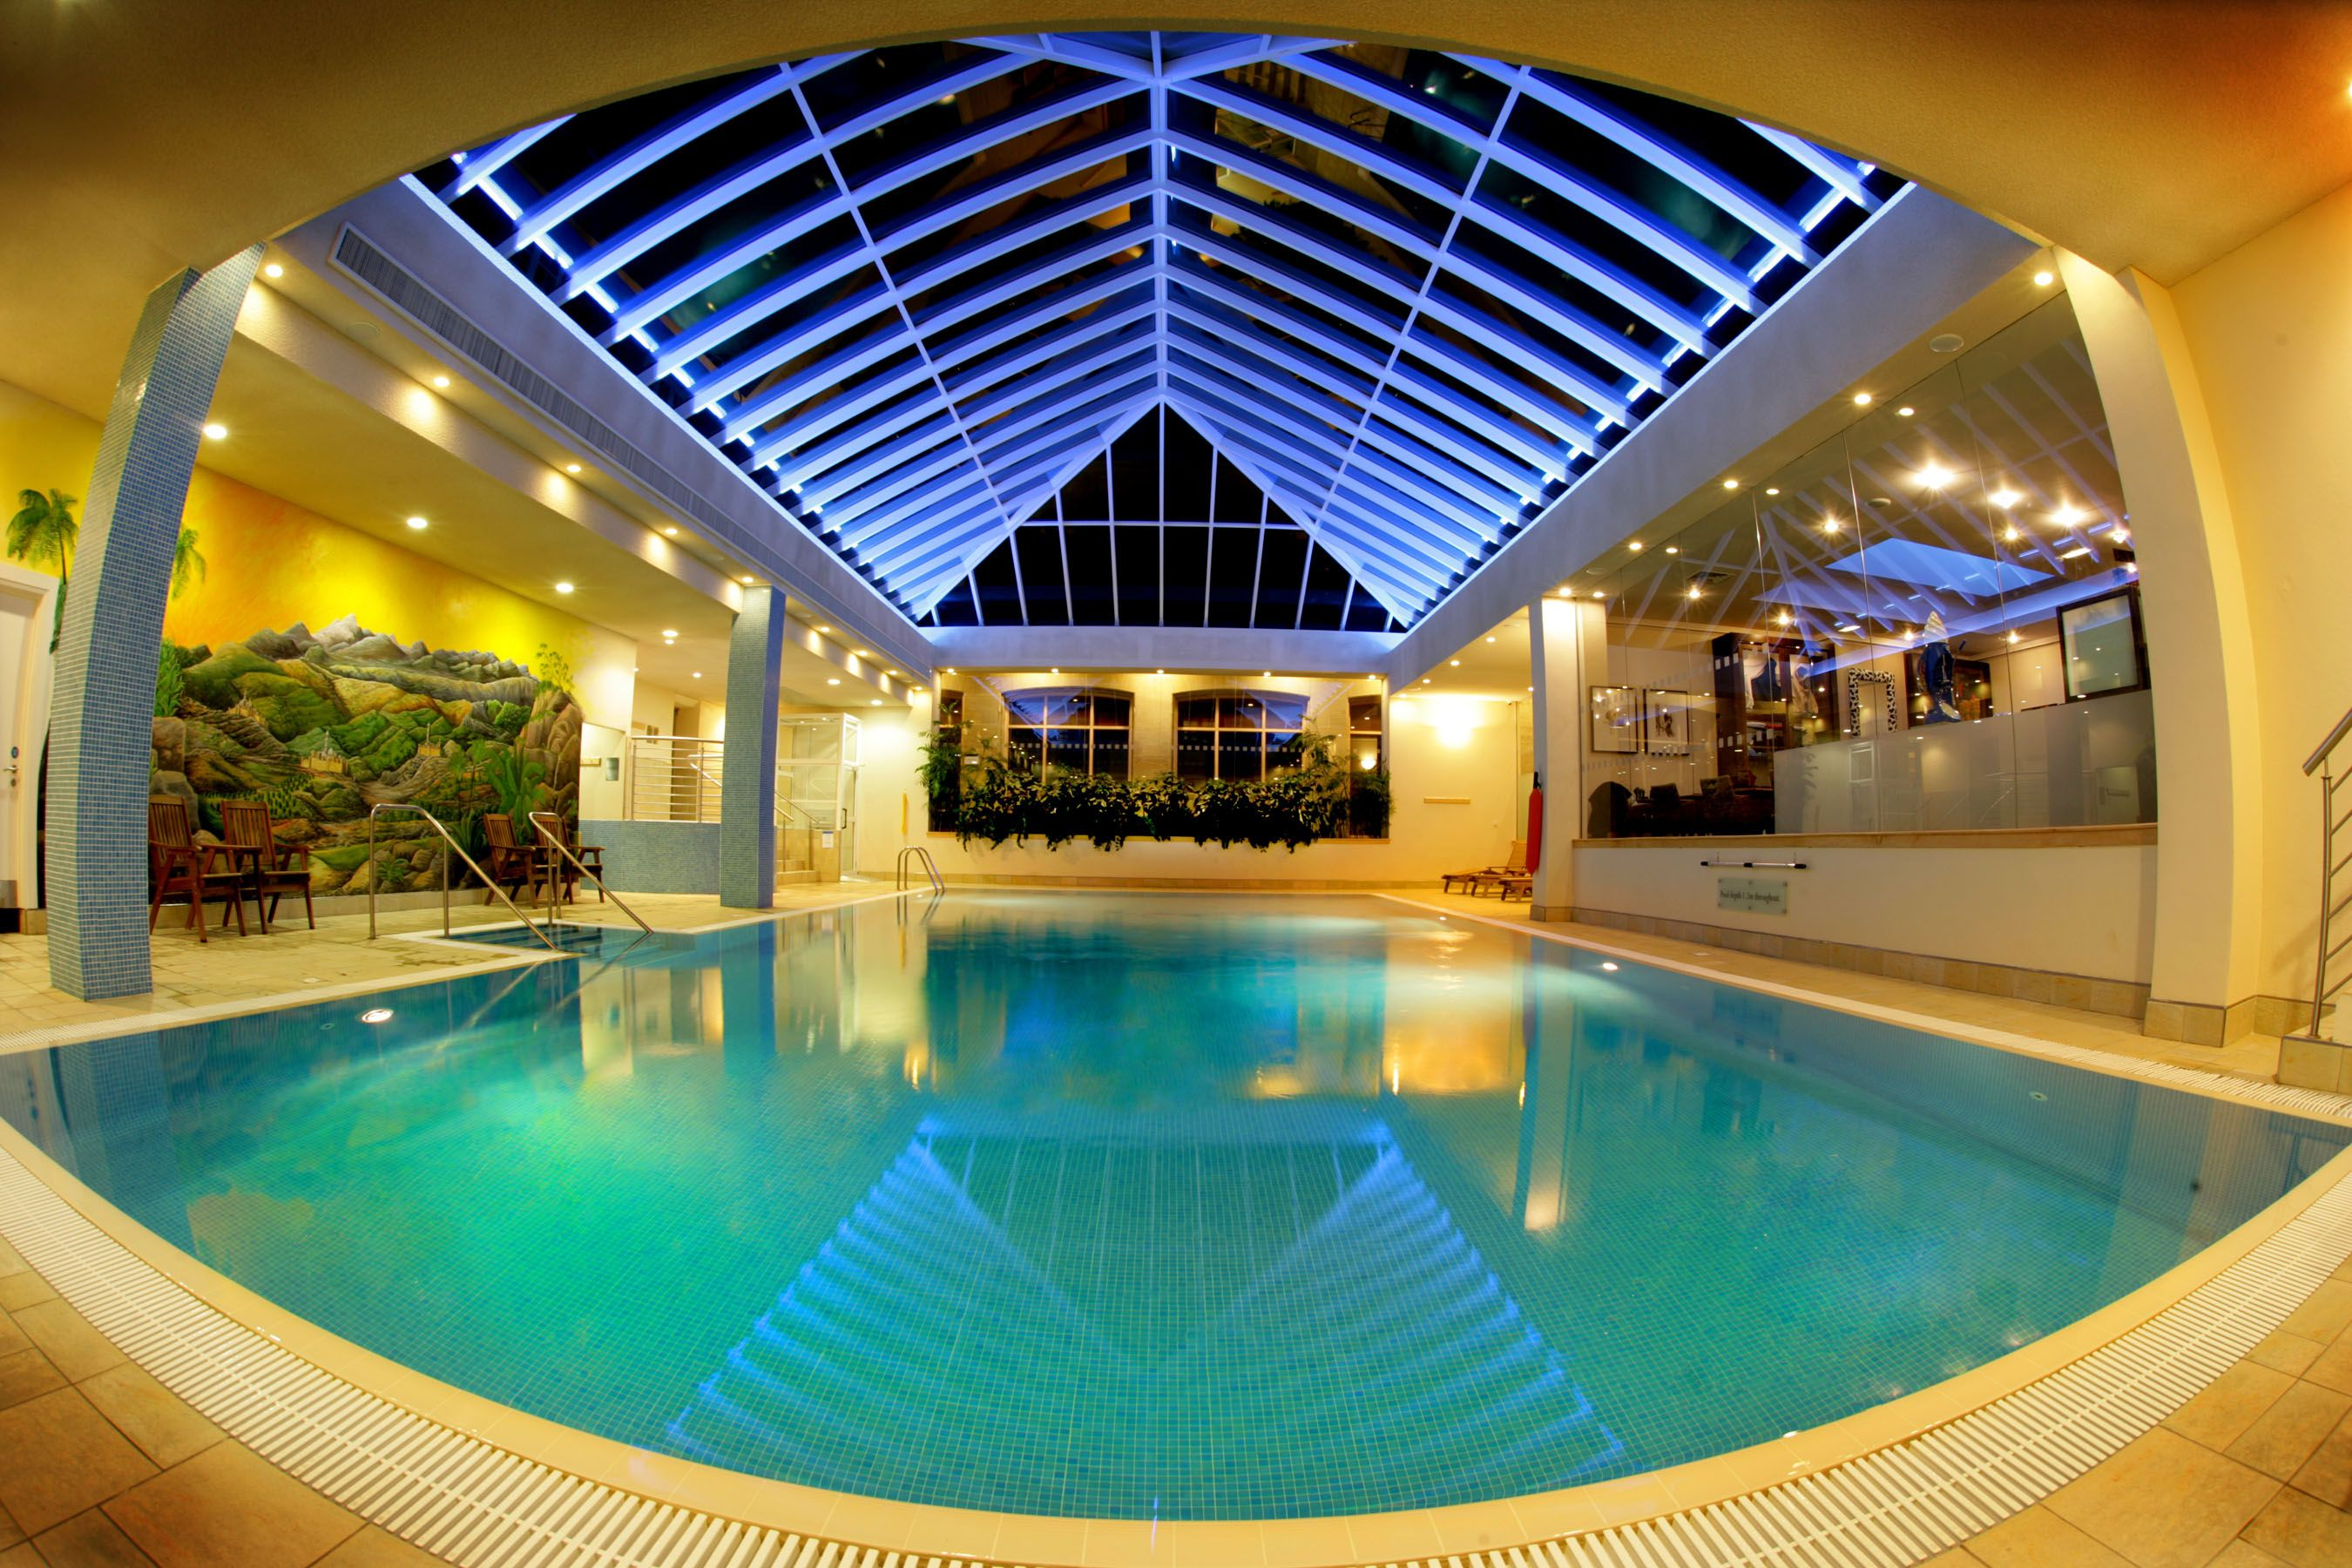 Merveilleux Indoor Swimming Pool With Extraordinary Design Ideas